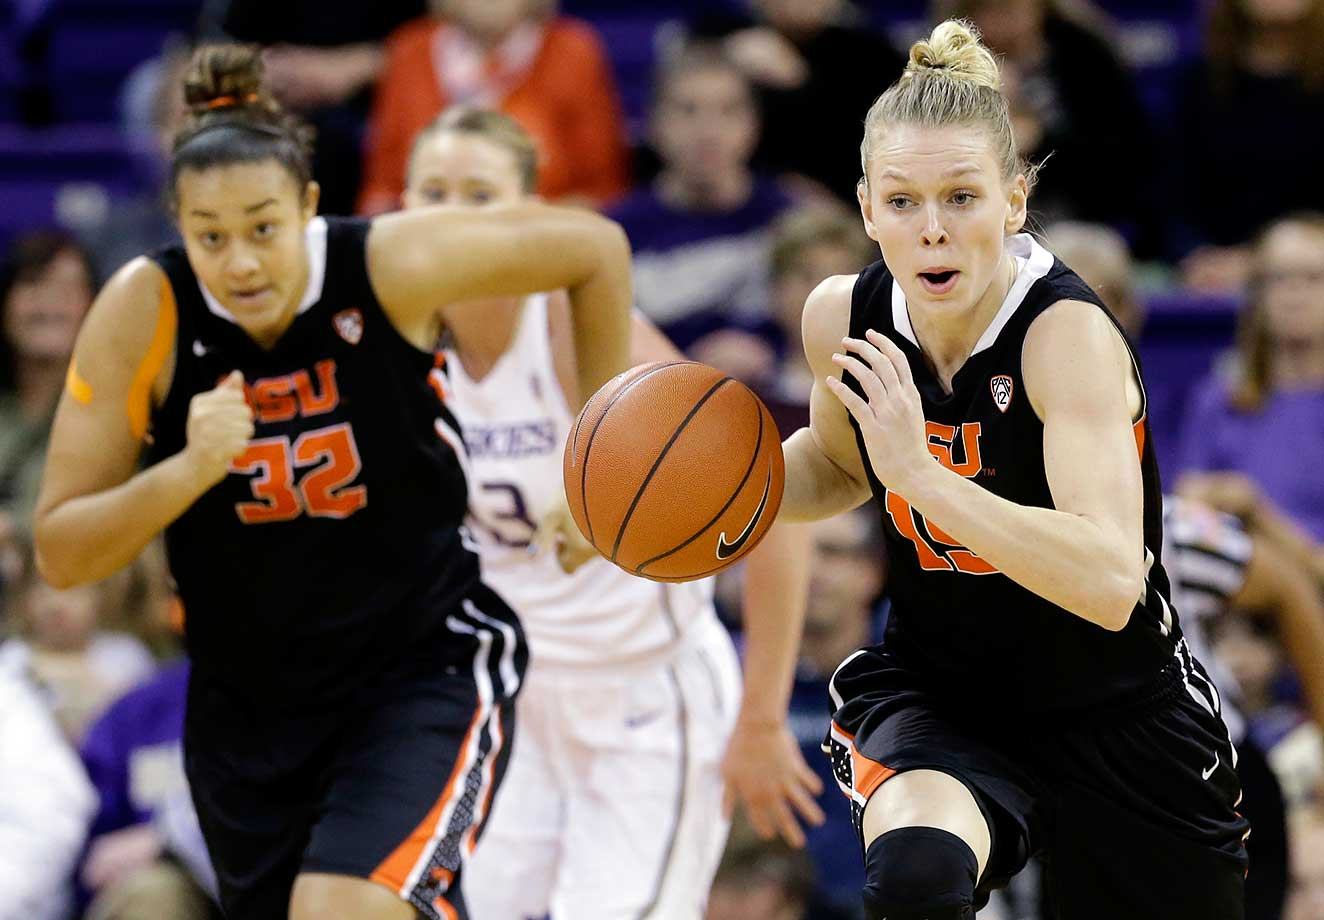 Oregon State's Jamie Weisner is trailed by teammate Deven Hunter and Washington's Katie Collier during their game in Seattle.